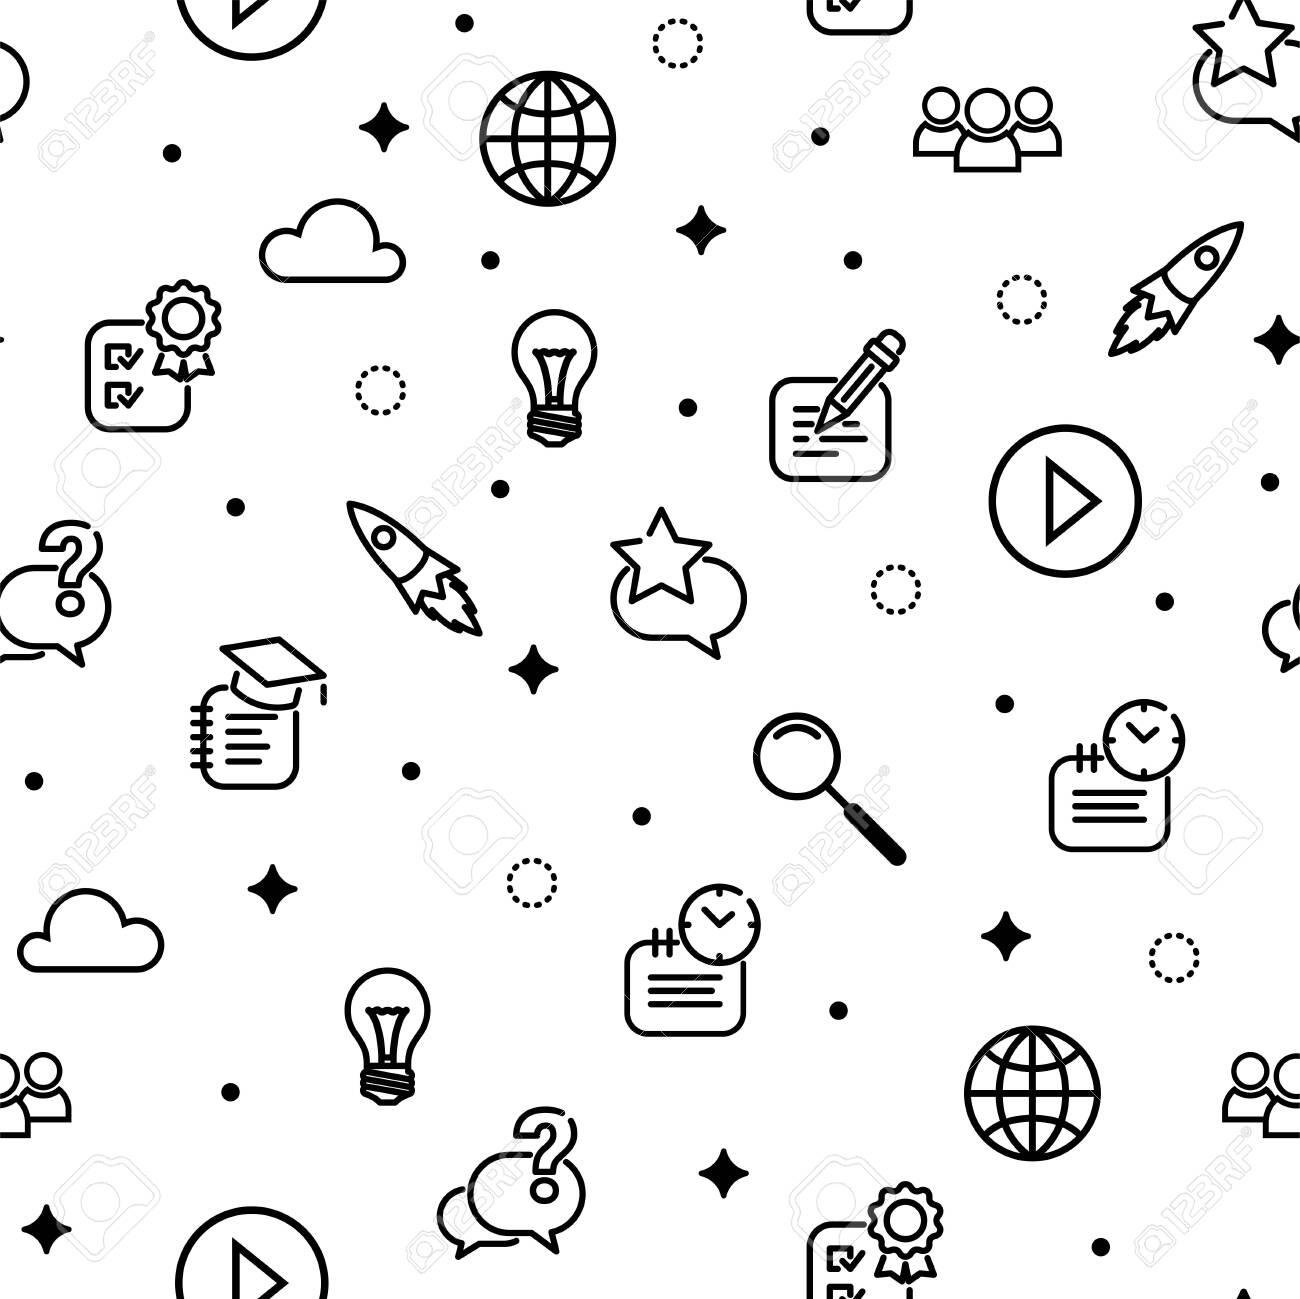 Online Education Seamless Pattern Black School Line Icons On Royalty Free Cliparts Vectors And Stock Illustration Image 146726282